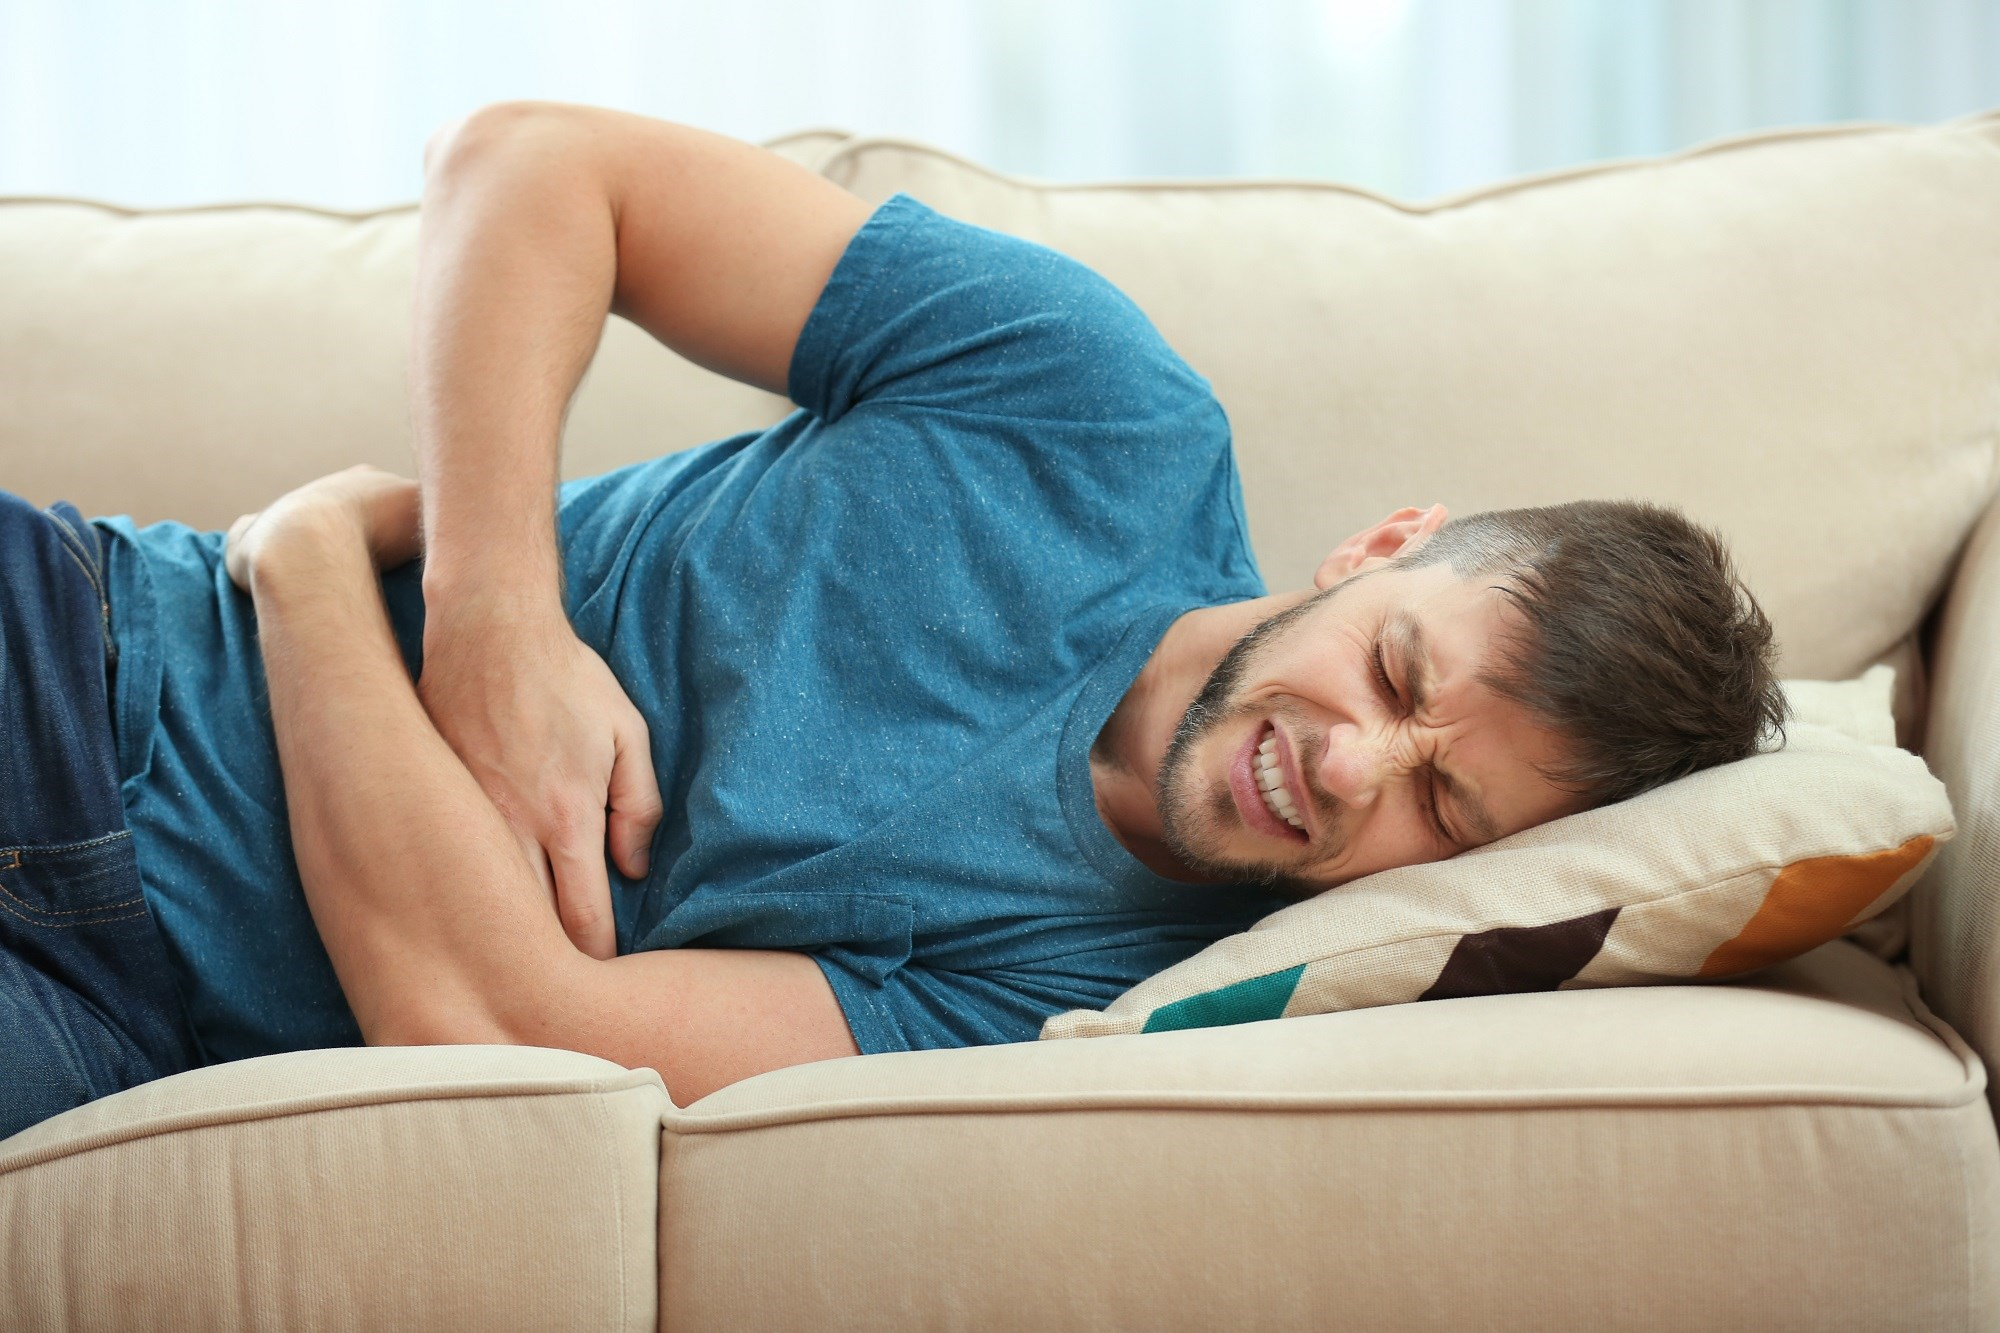 Eluxadoline May Improve Abdominal Pain in Irritable Bowel Syndrome With Diarrhea